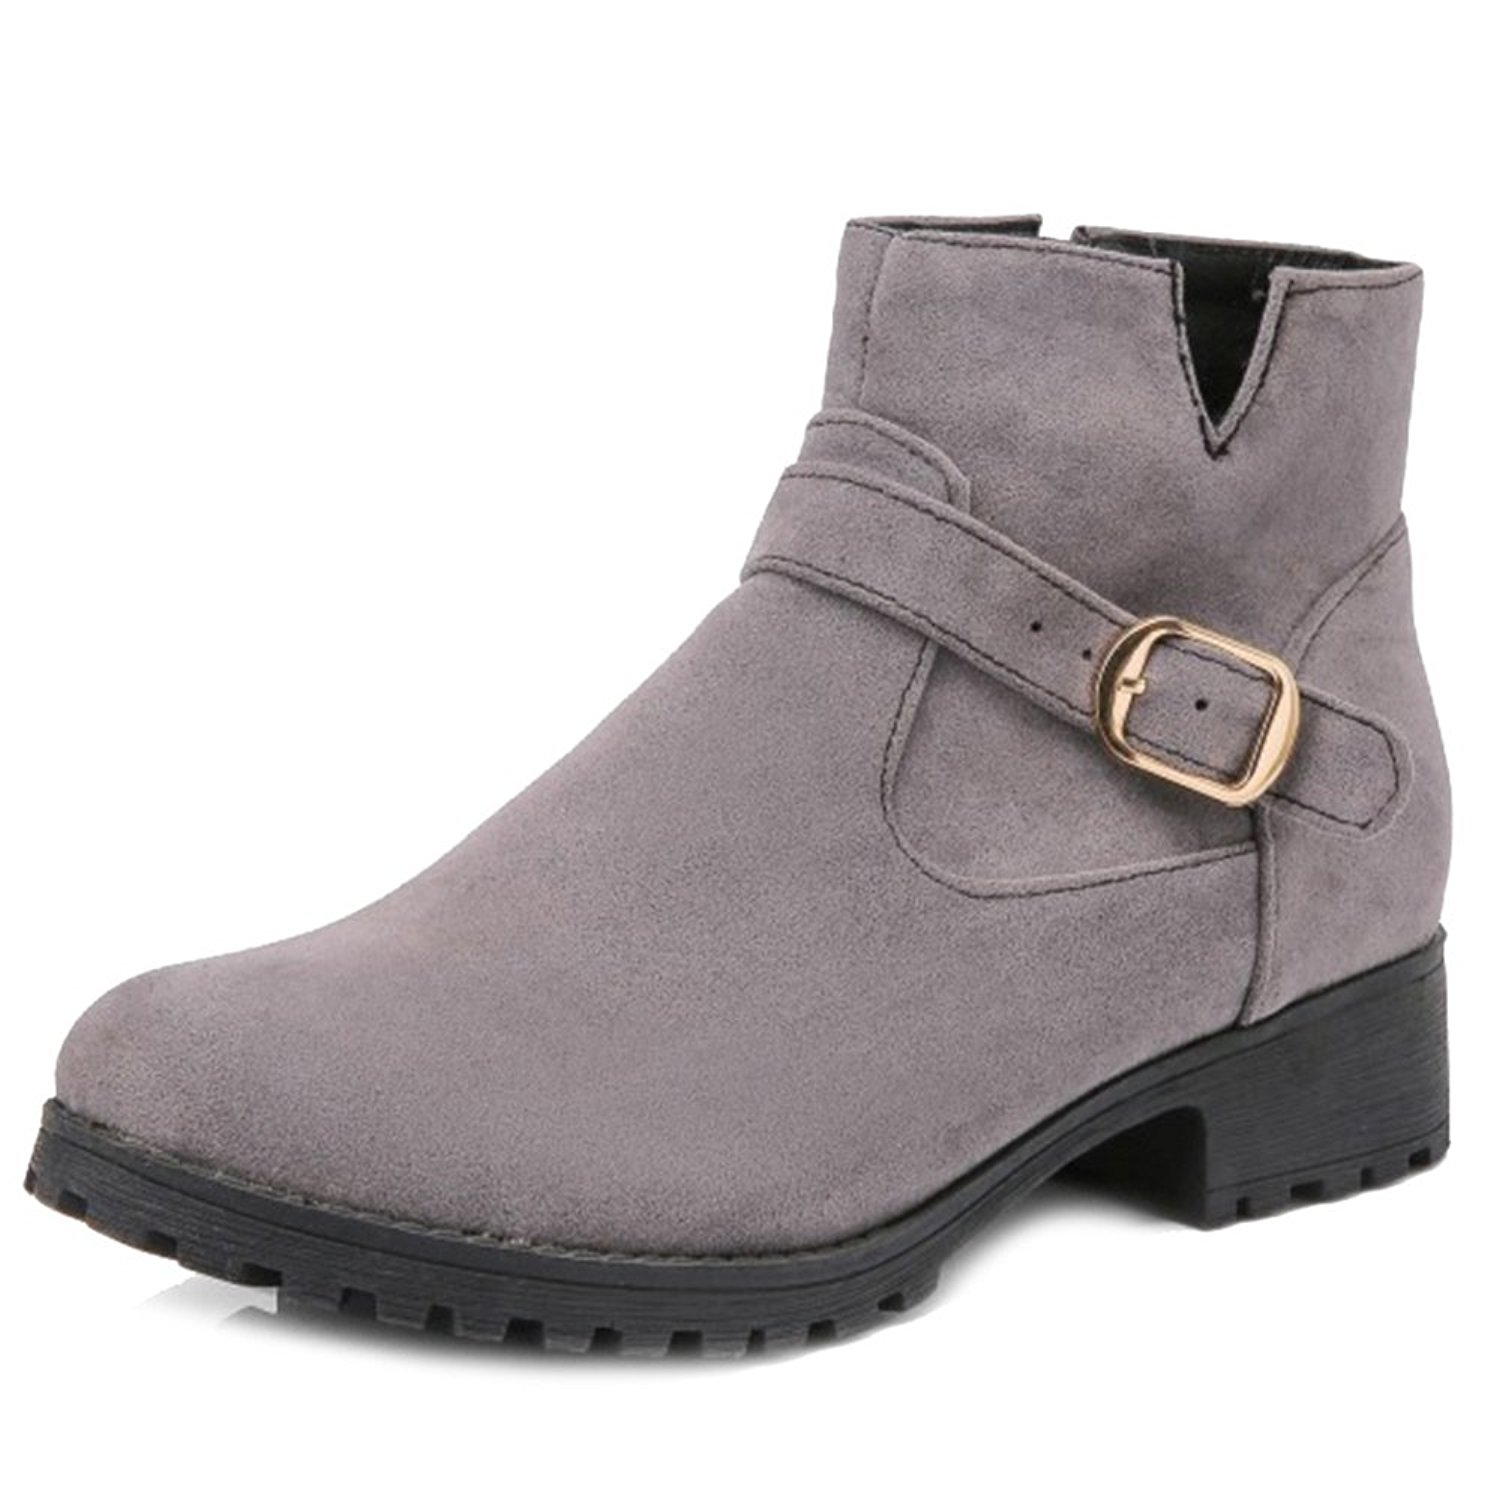 5048ddf4428 Get Quotations · SJJH Women Ankle Boots with Flat and Nubuck Materail Nice Large  Size Short Boots